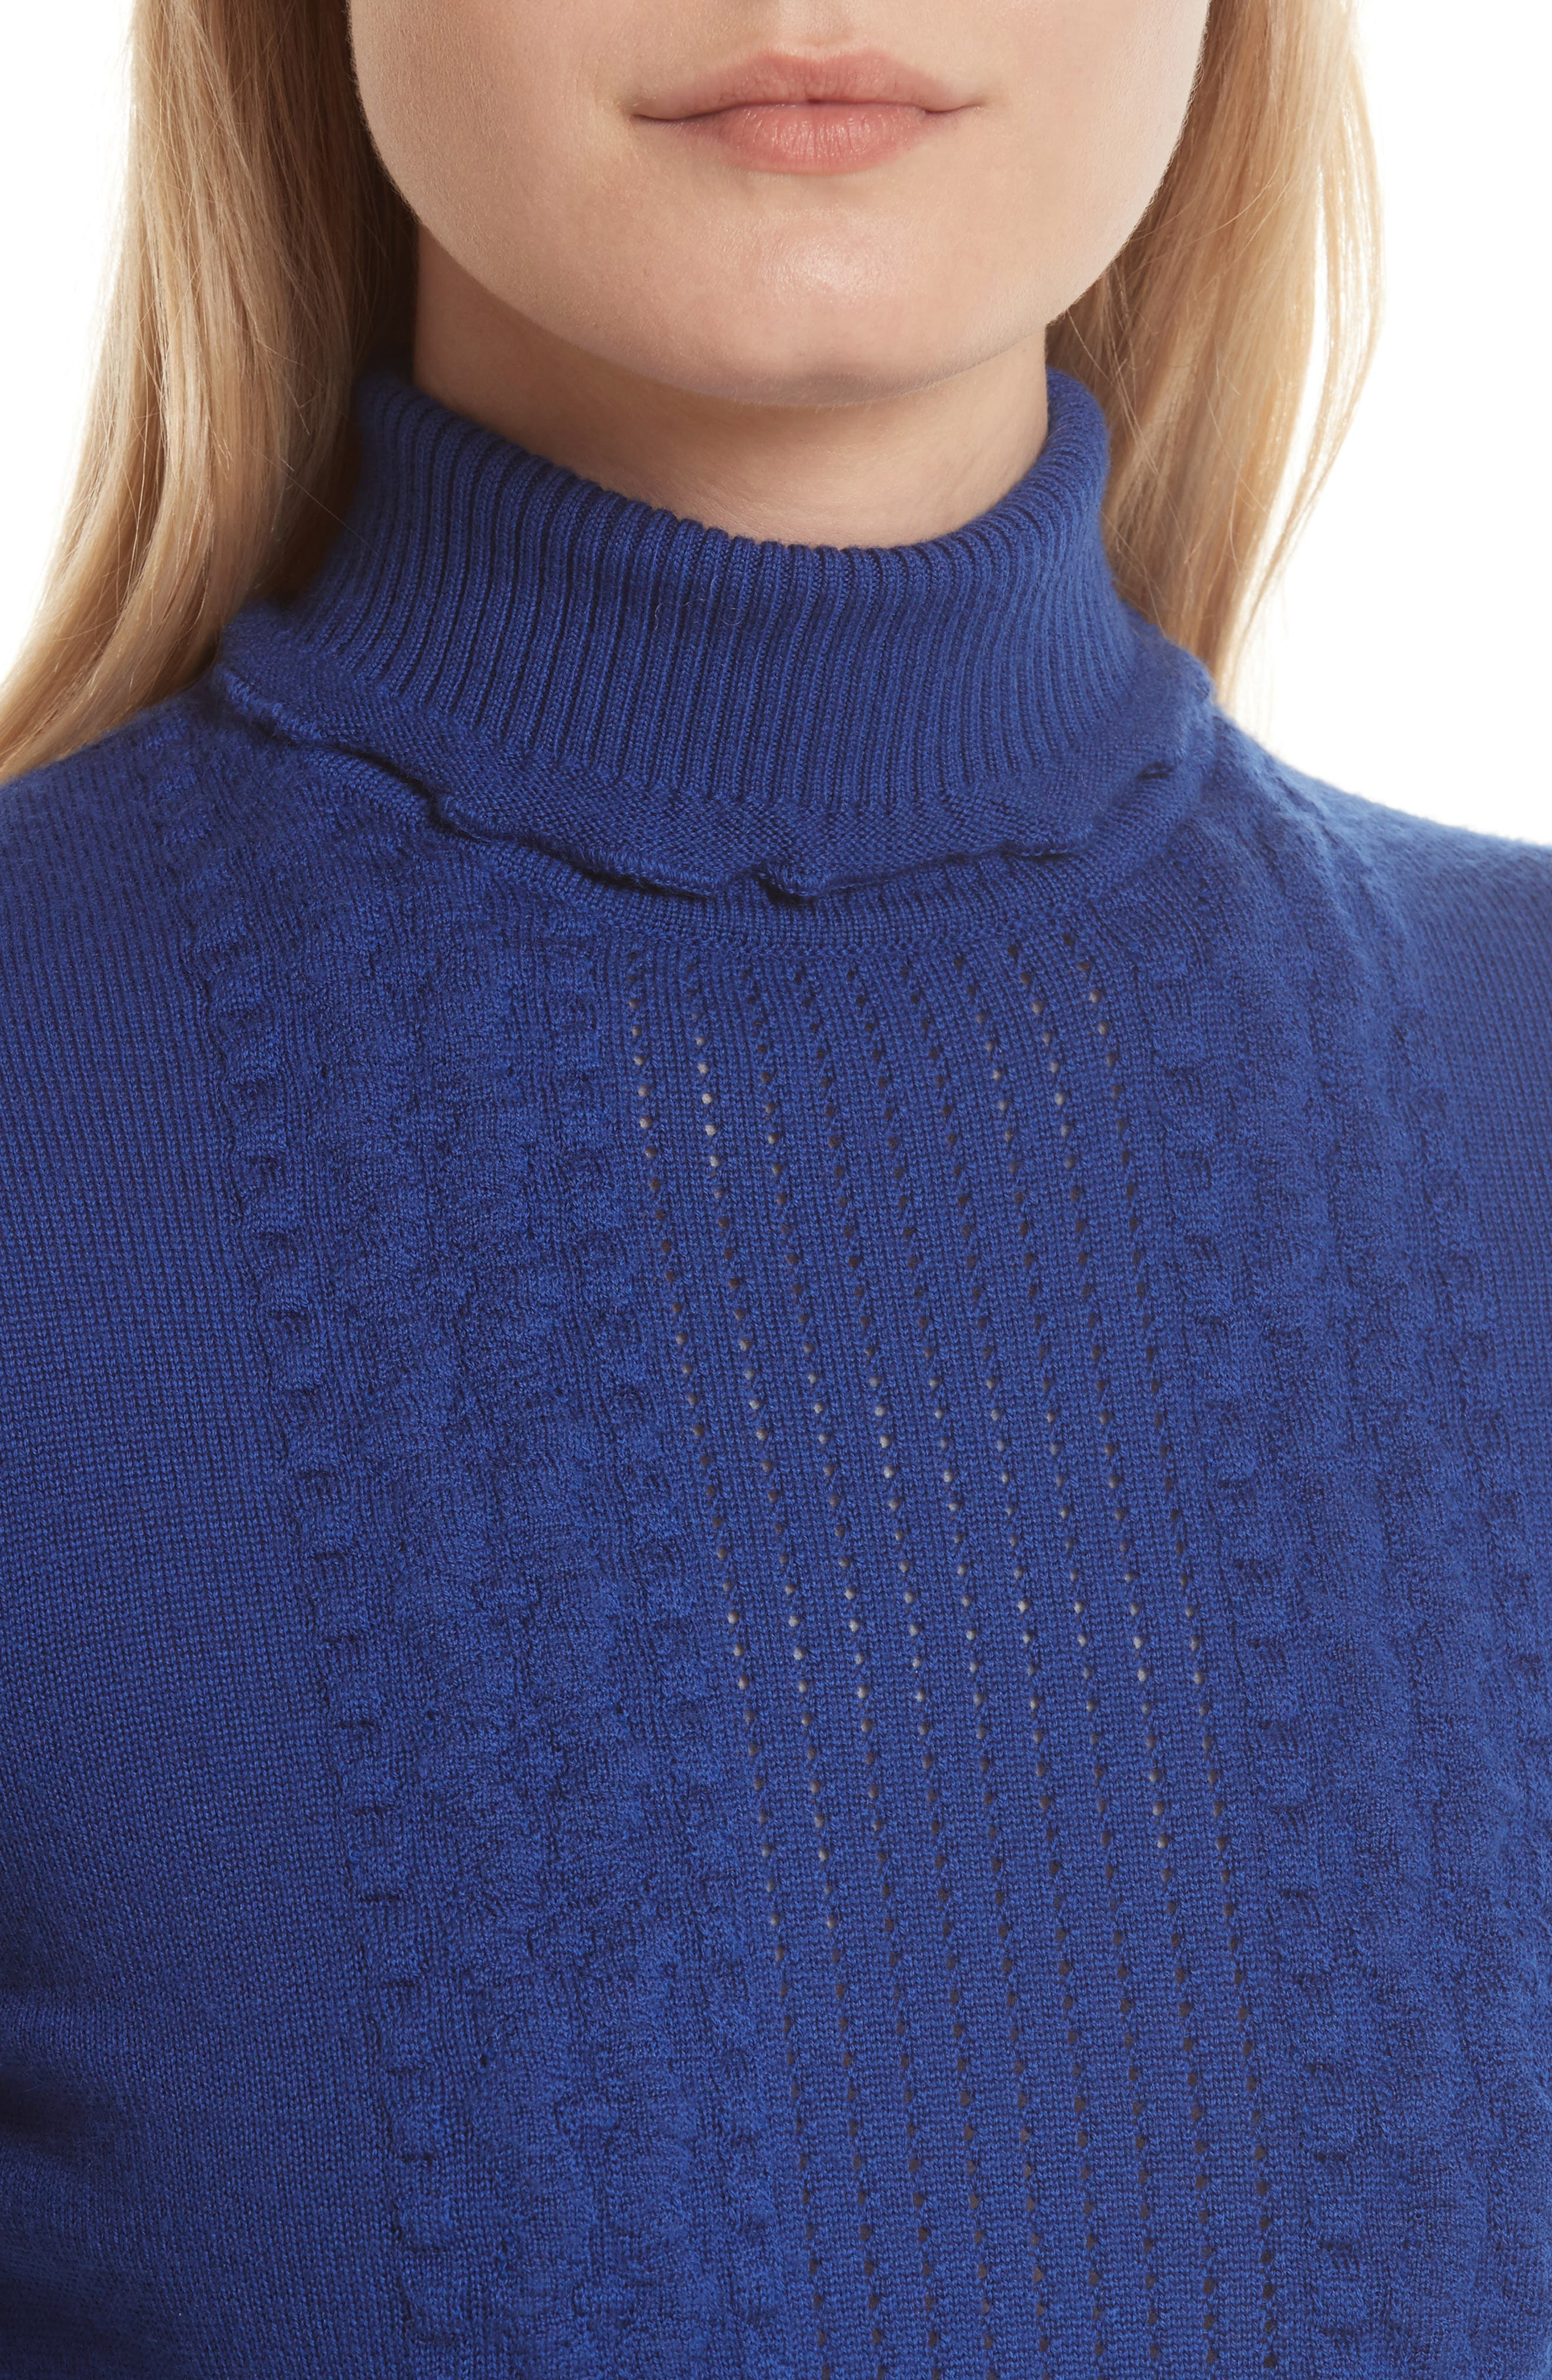 Alternate Image 4  - 3.1 Phillip Lim Puffy Cable Turtleneck Sweater